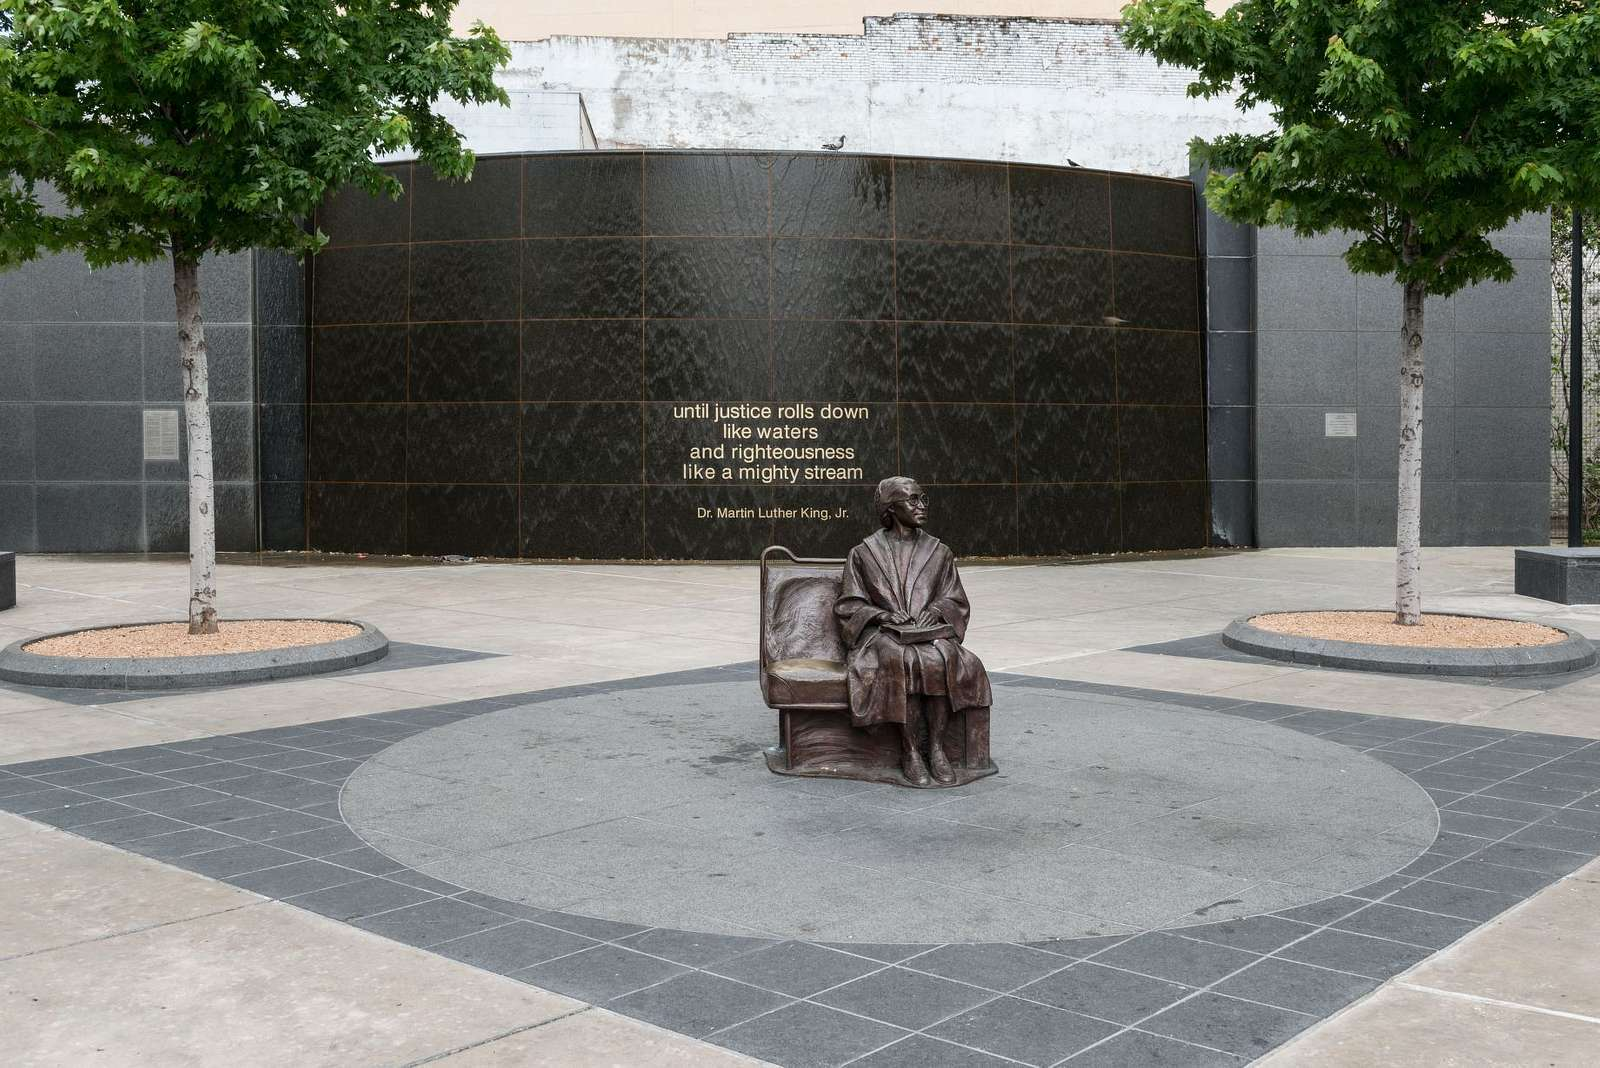 A life-size bronze statue of African-American civil-rights stalwart Rosa Parks, sitting on a bus bench, the focal point of a plaza at a Dallas Area Rapid Transit, or DART, station that was completed in 2009 in Dallas, Texas